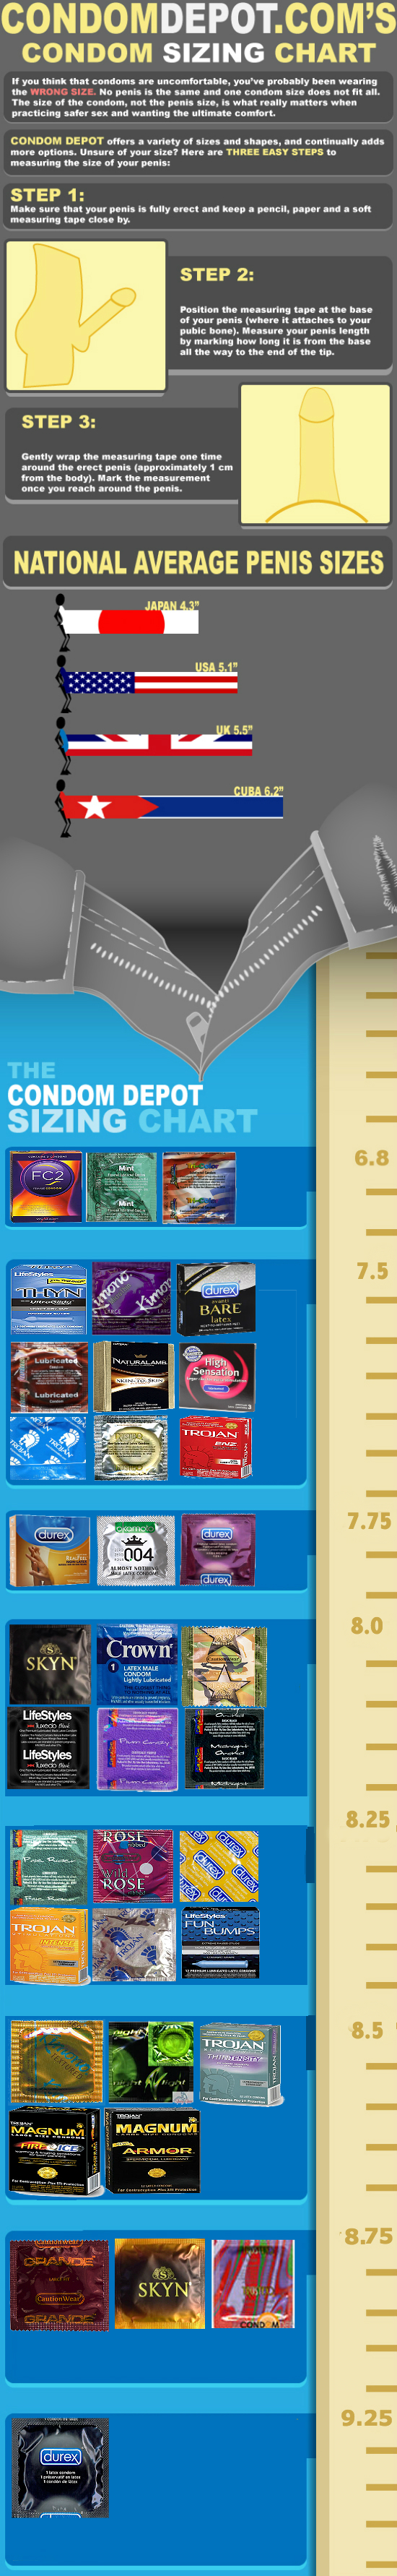 Condom Size Infographic – Condom Depot Learning Center